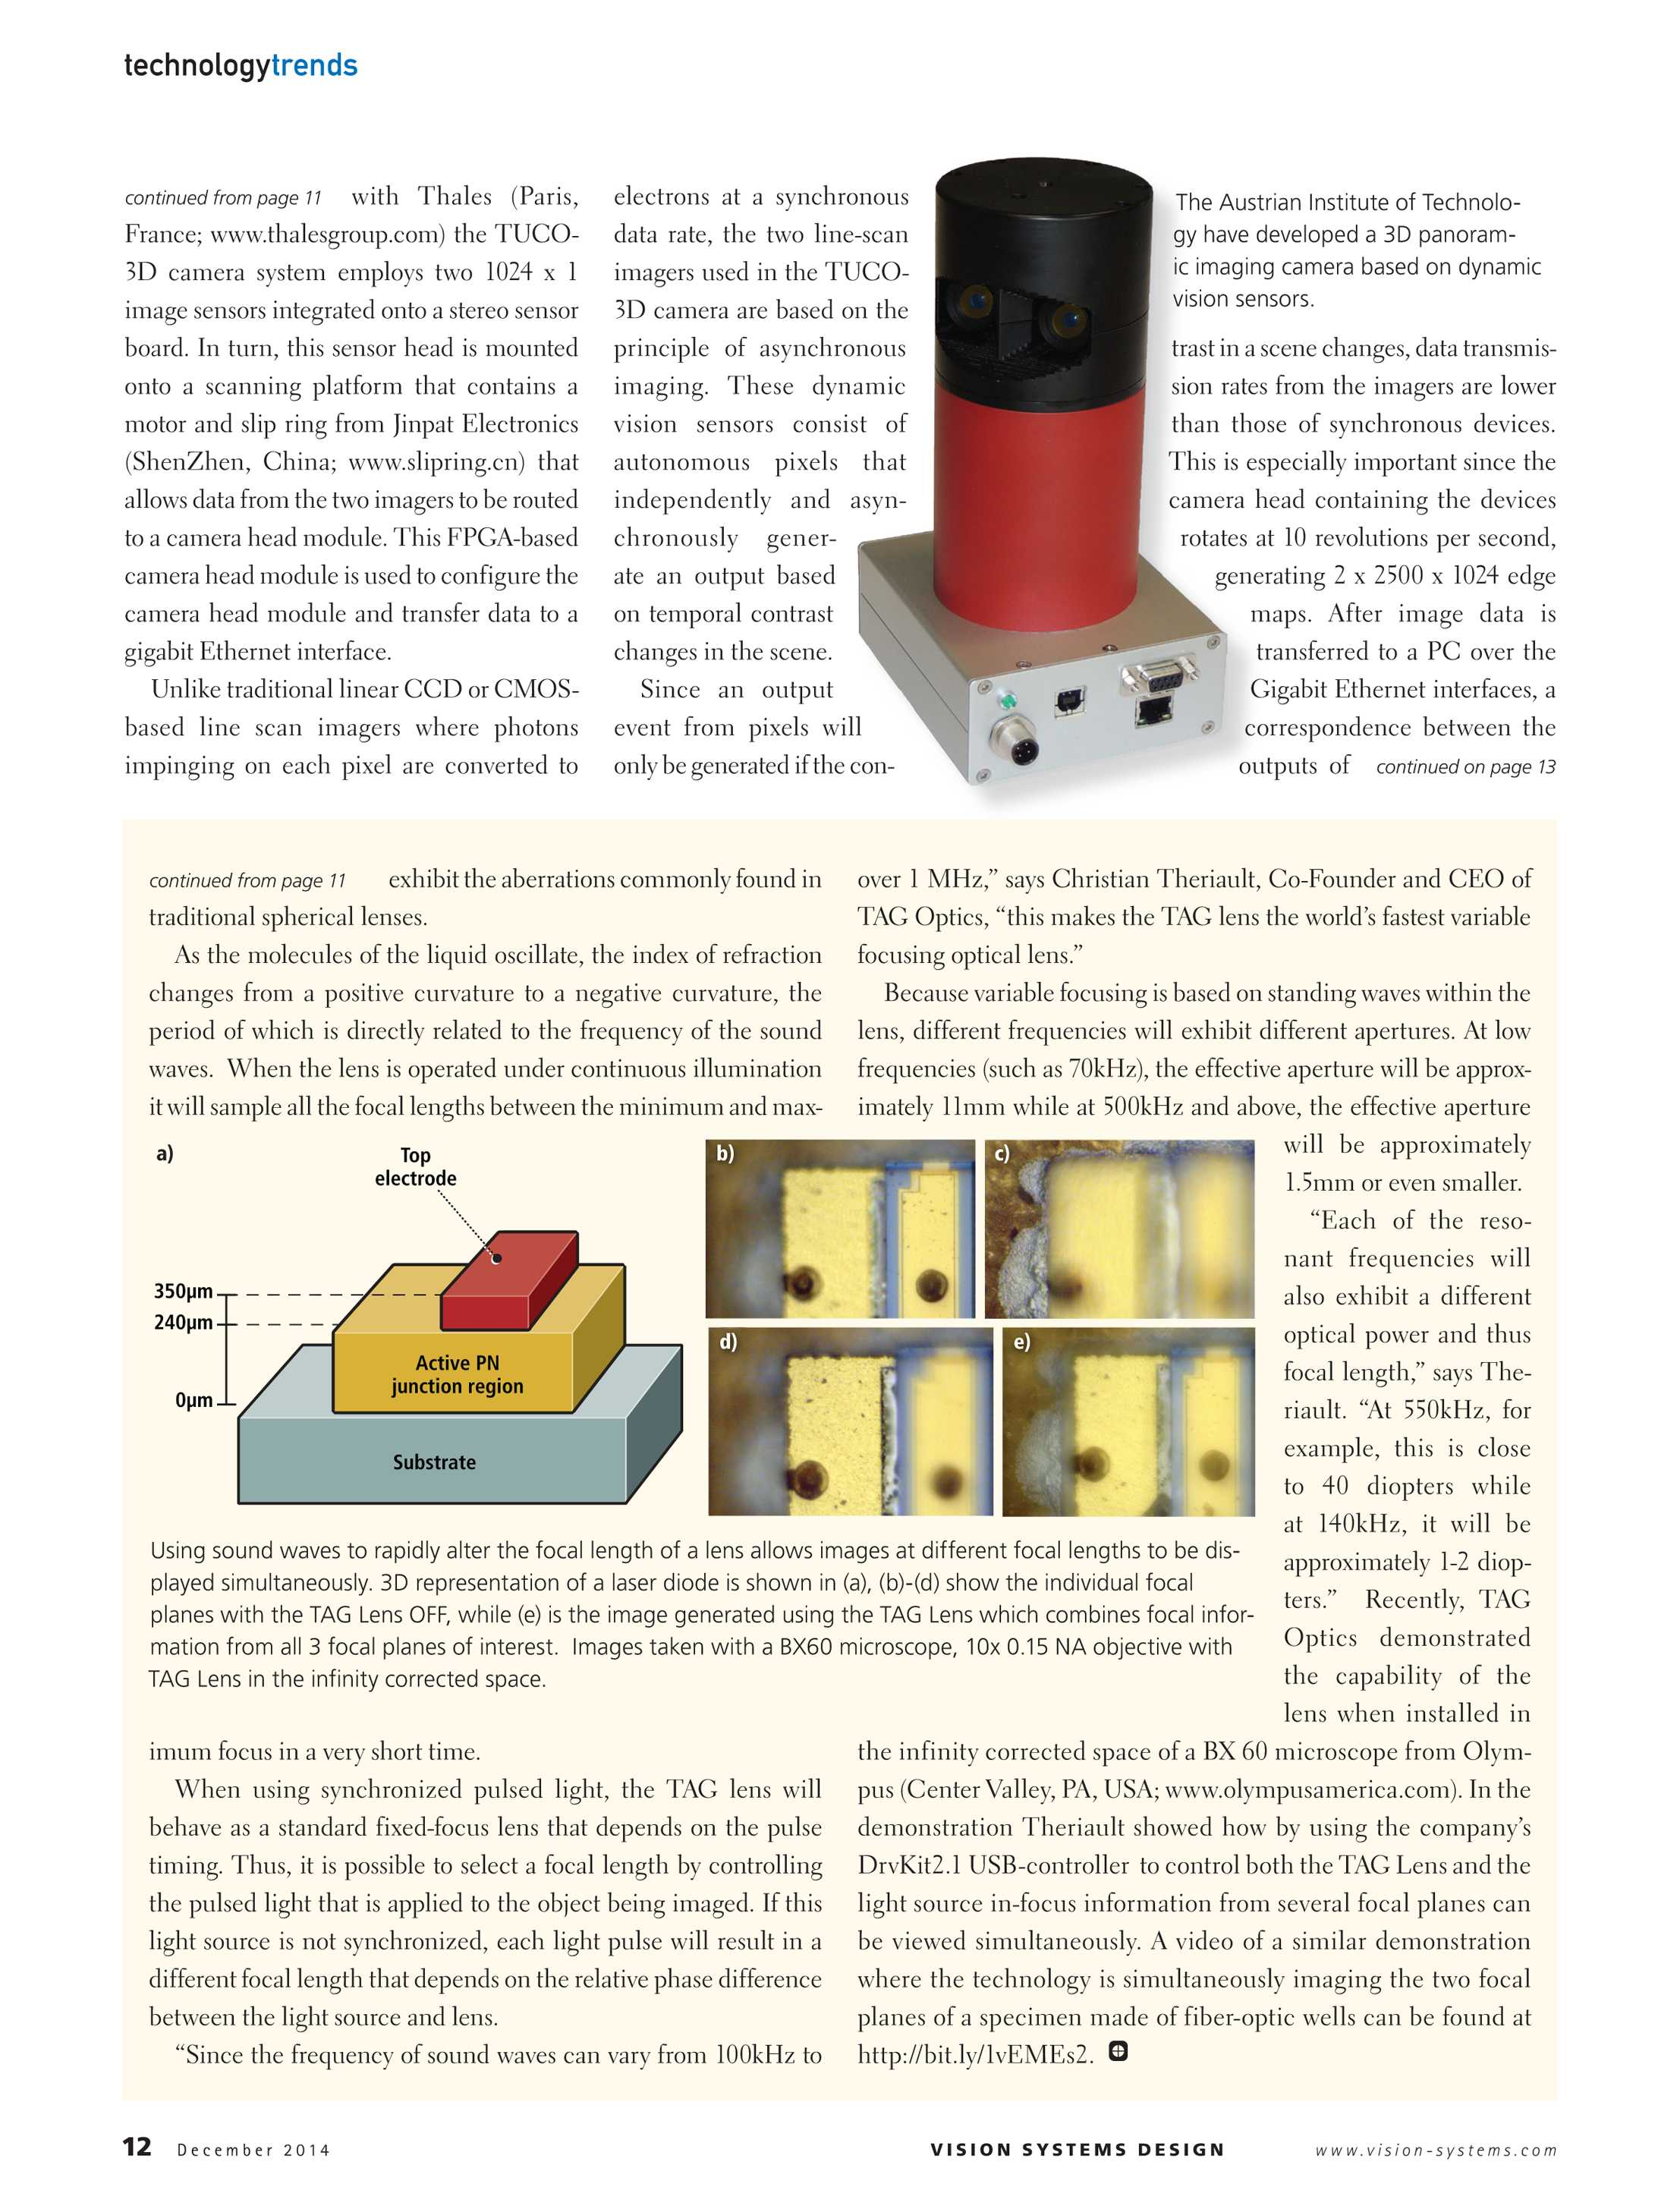 Vision Systems - December 2014 - page 12